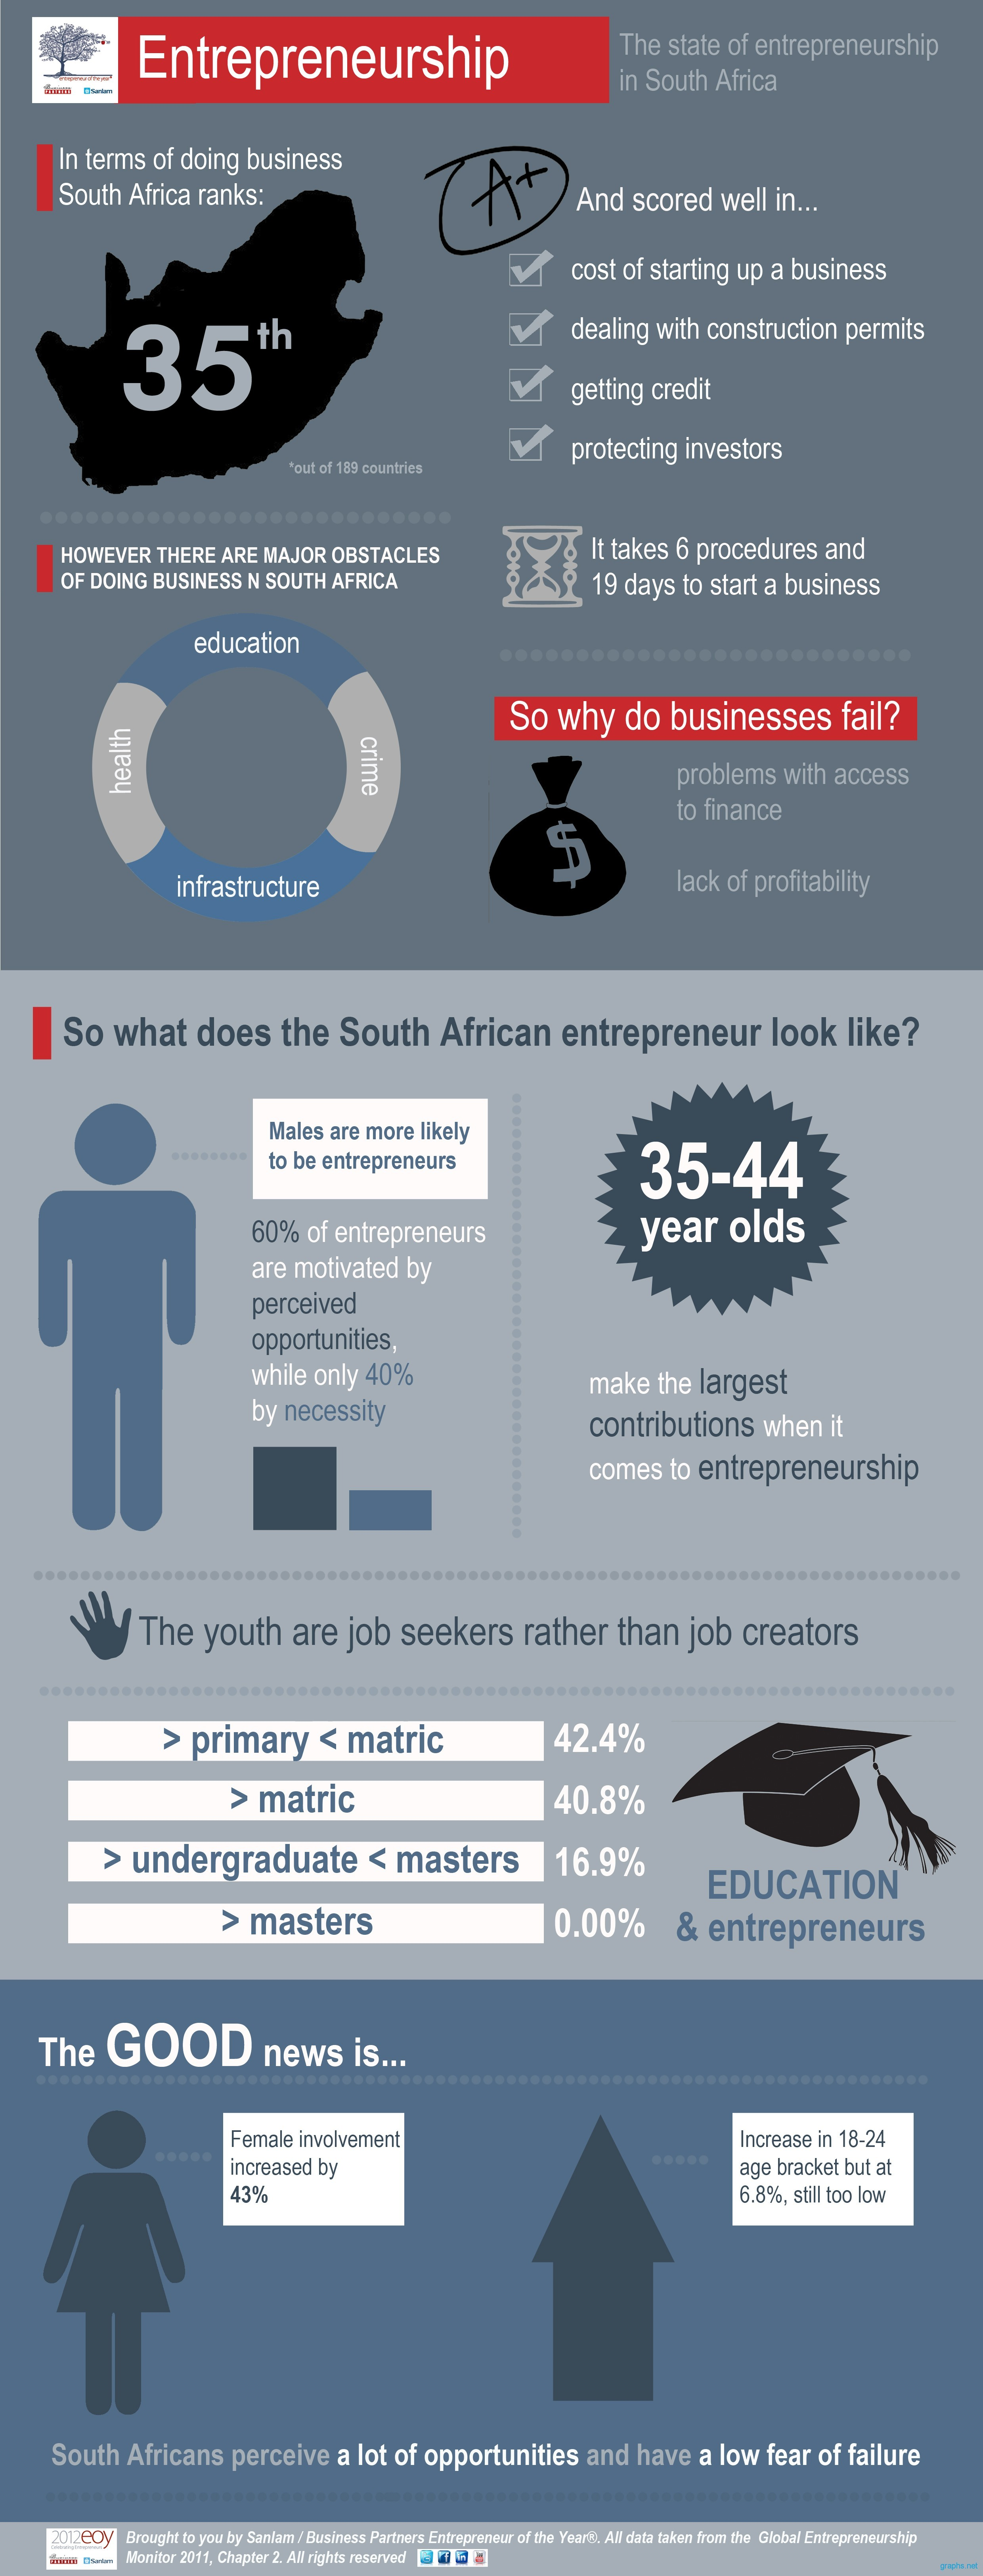 Current State of Entrepreneurship in South Africa